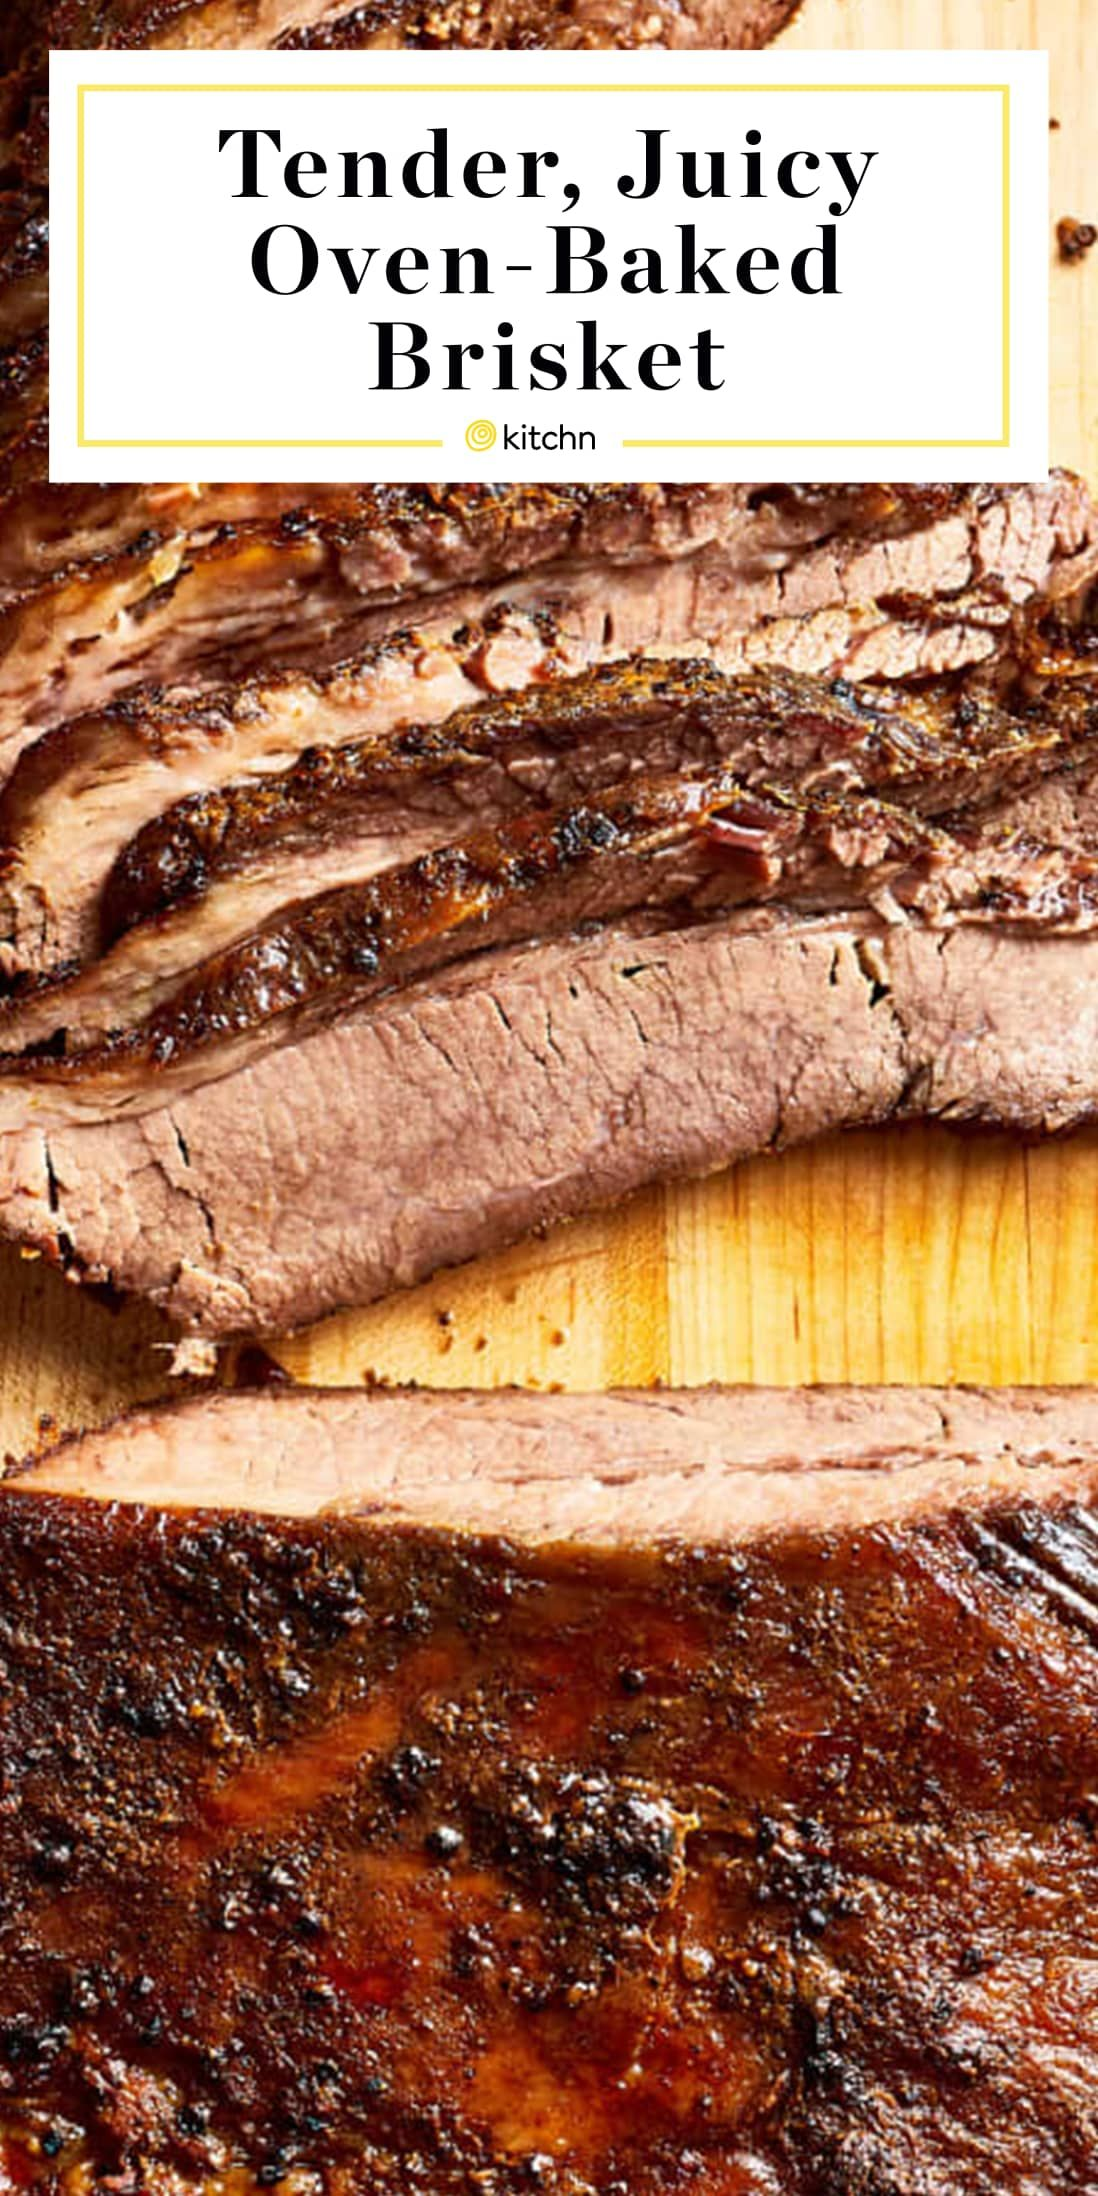 How To Make Texas Style Brisket In The Oven Recipe In 2020 Brisket Oven Brisket Recipes Brisket